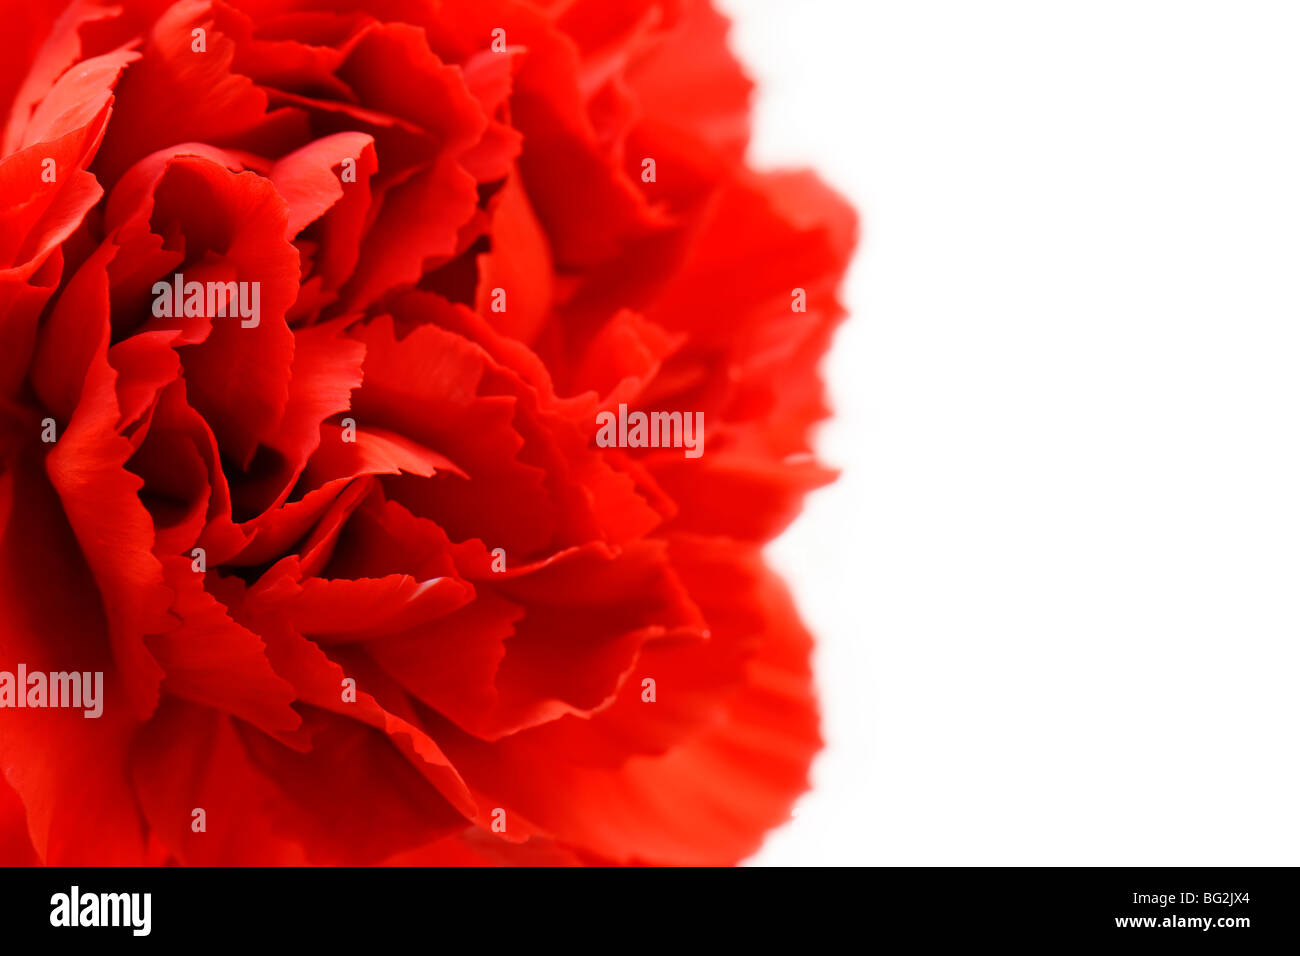 Red Carnation - Stock Image